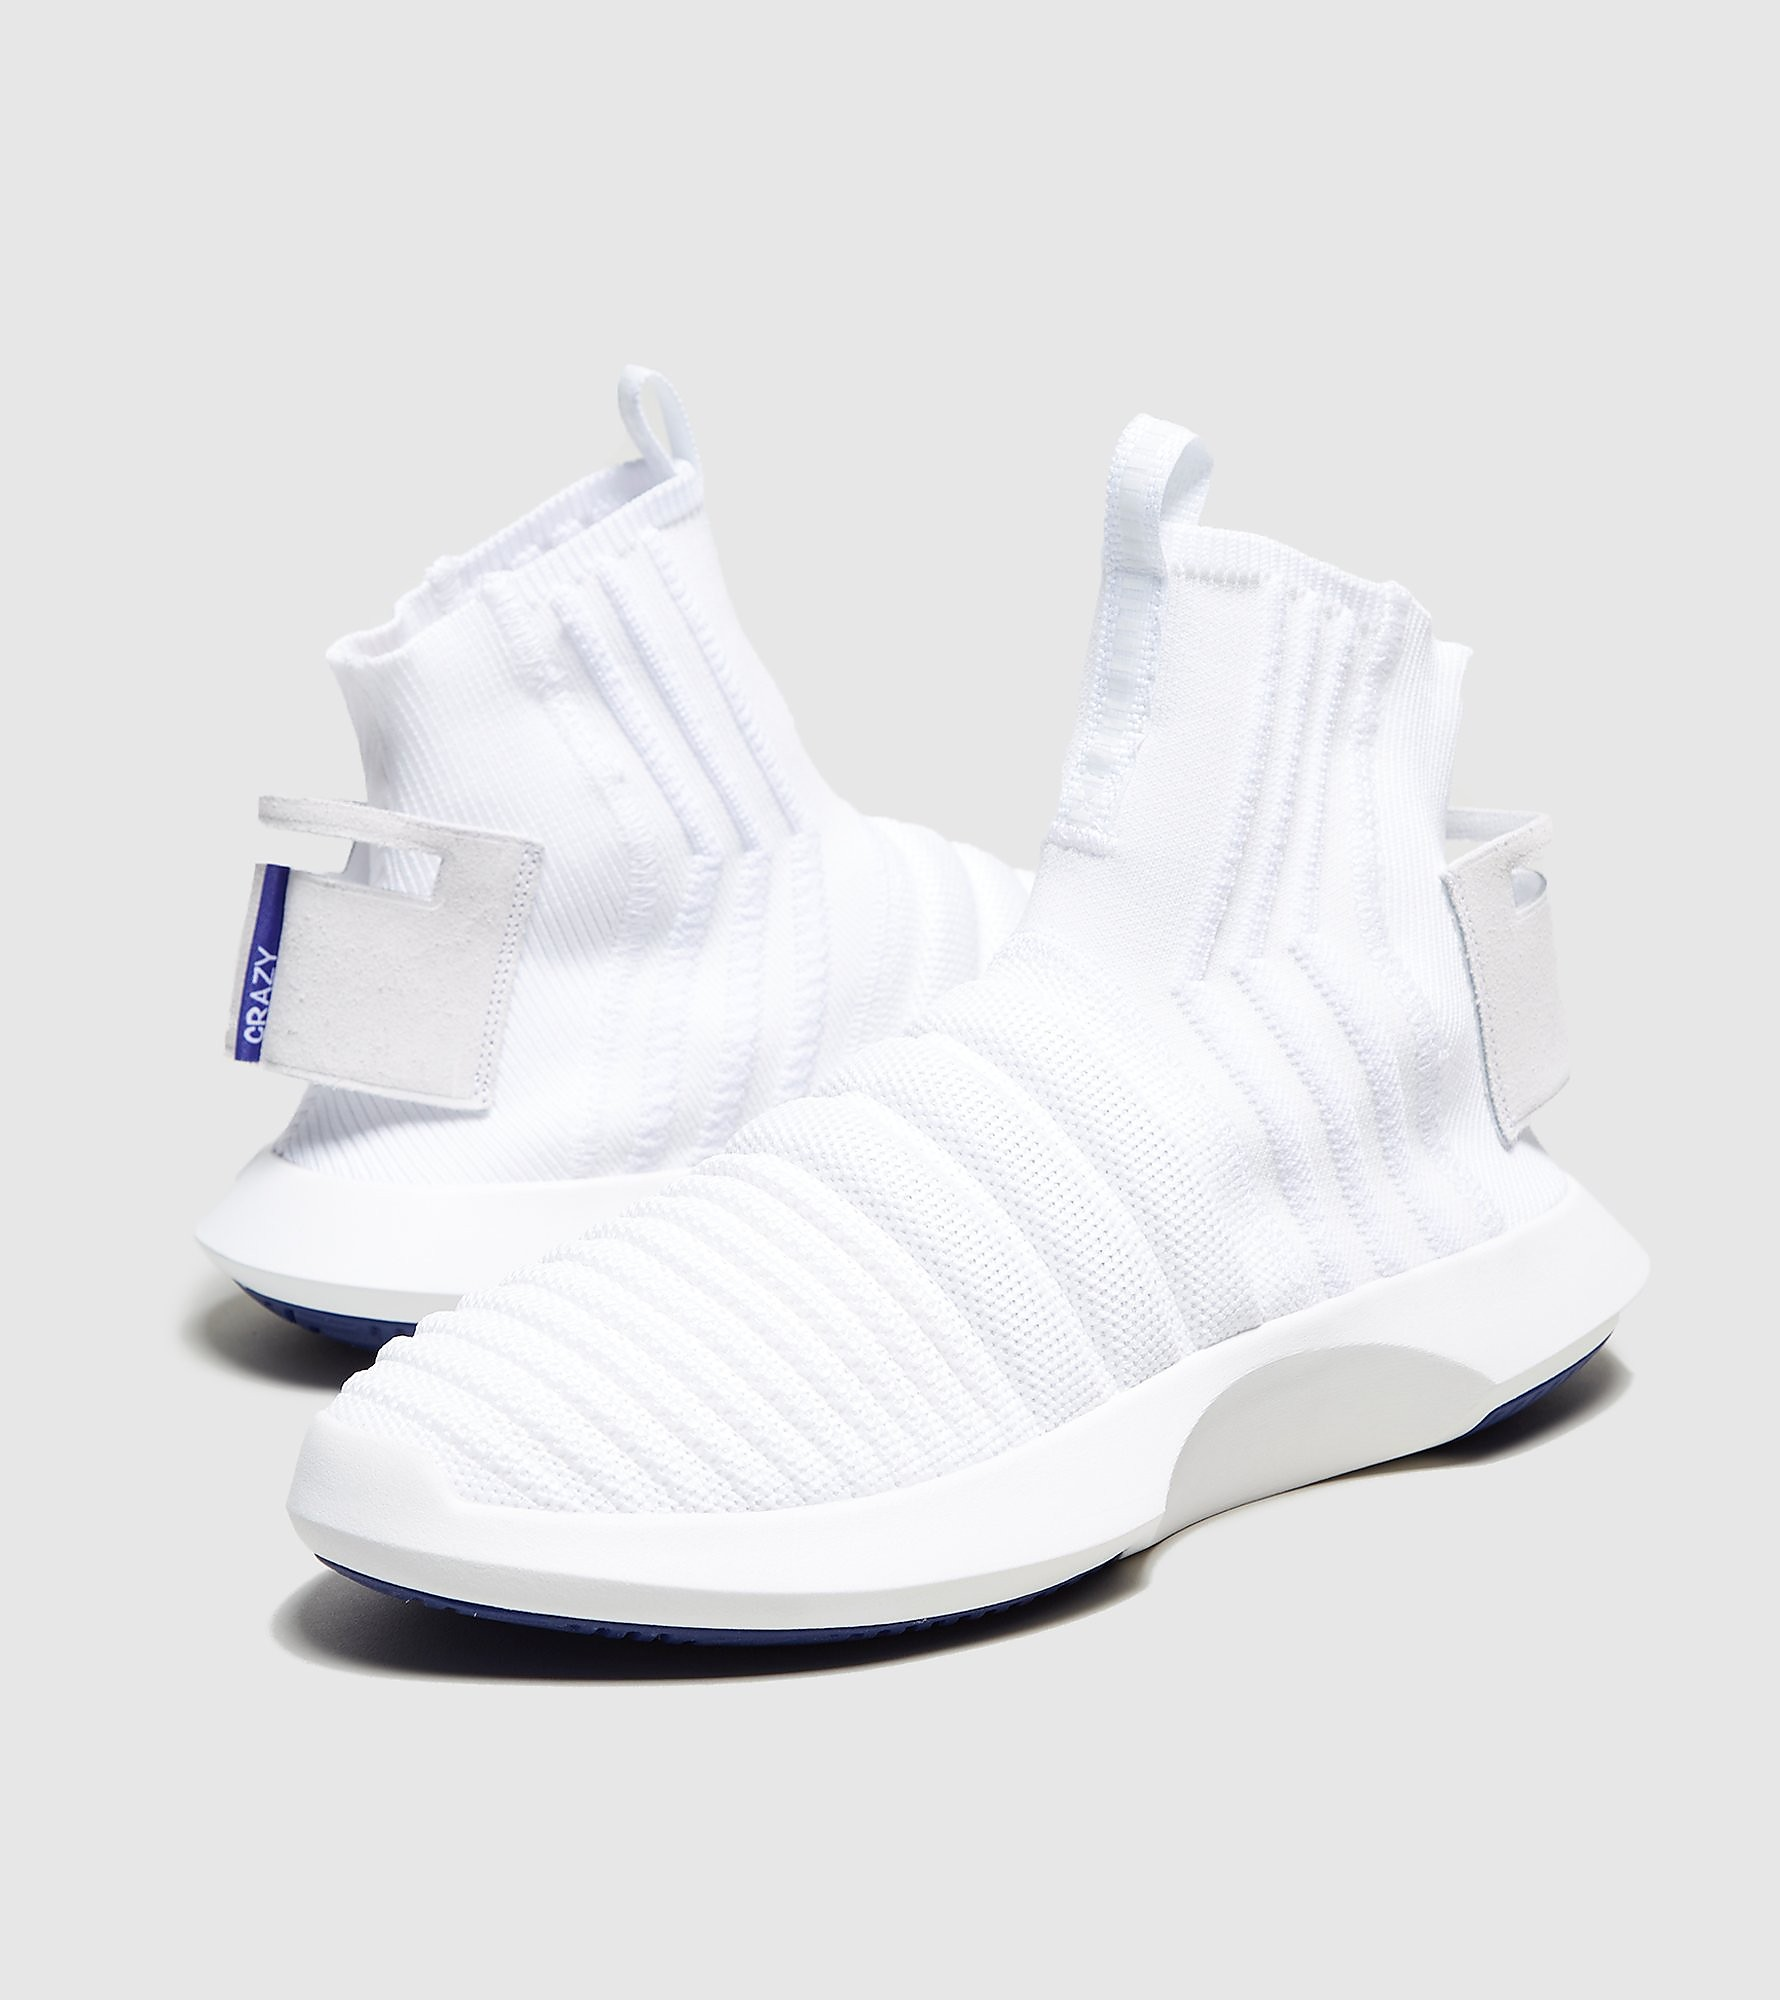 adidas Originals Crazy 1 Sock ADV Primeknit